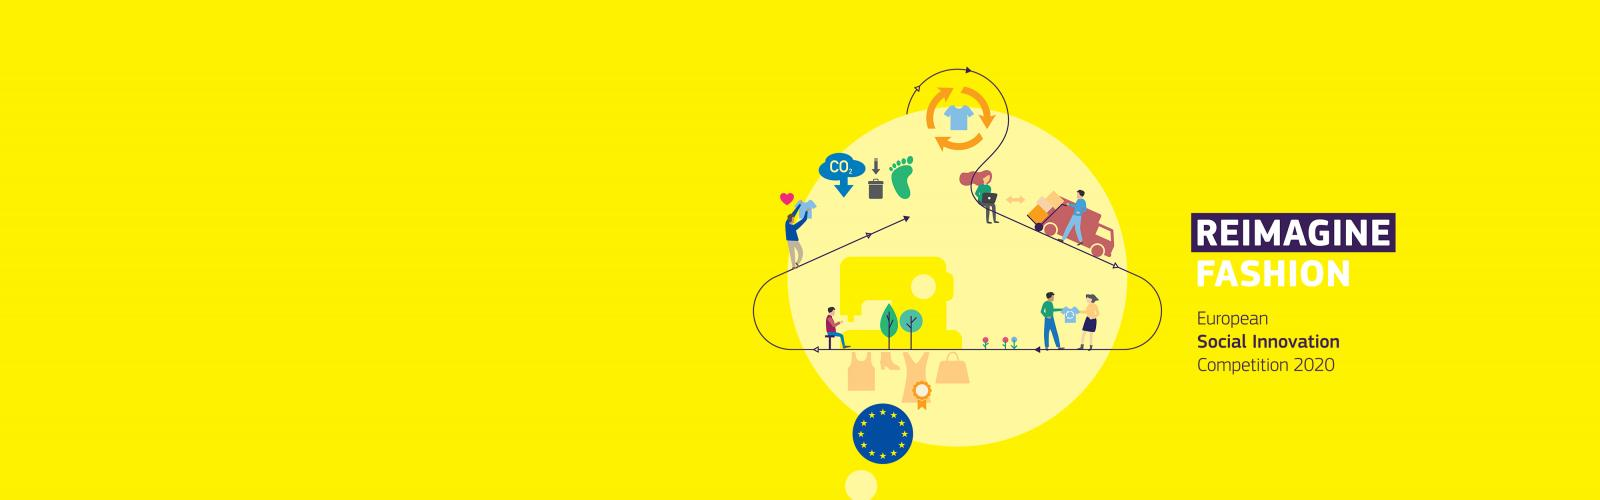 beeld European Social Innovation Competition